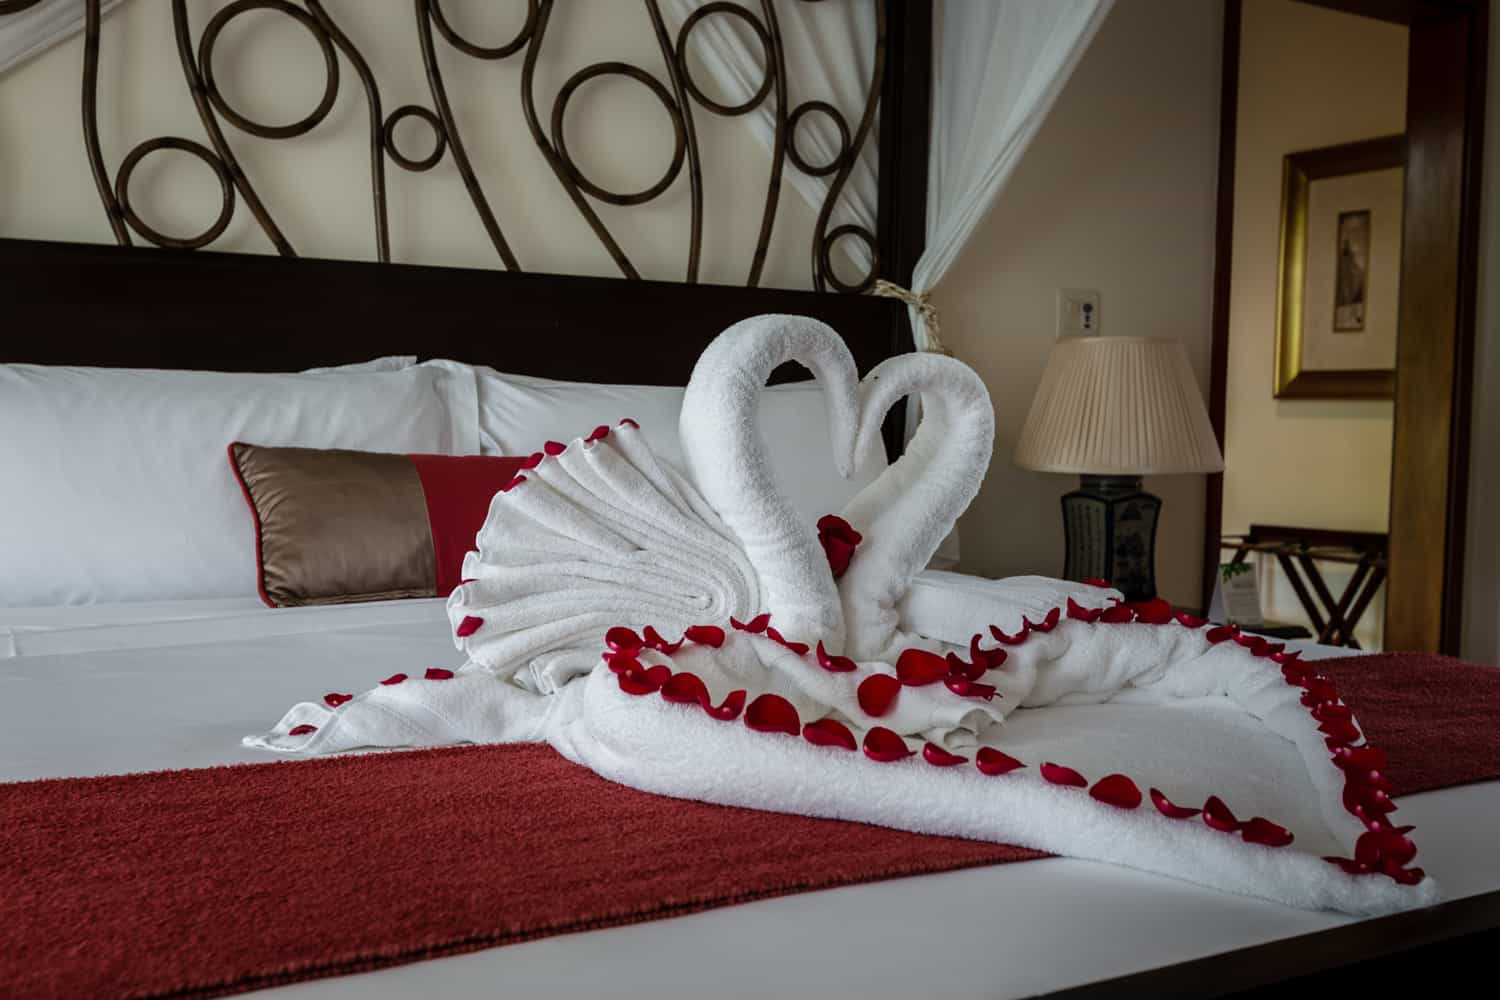 Swans made from towels kissing on honeymoon suite bed.